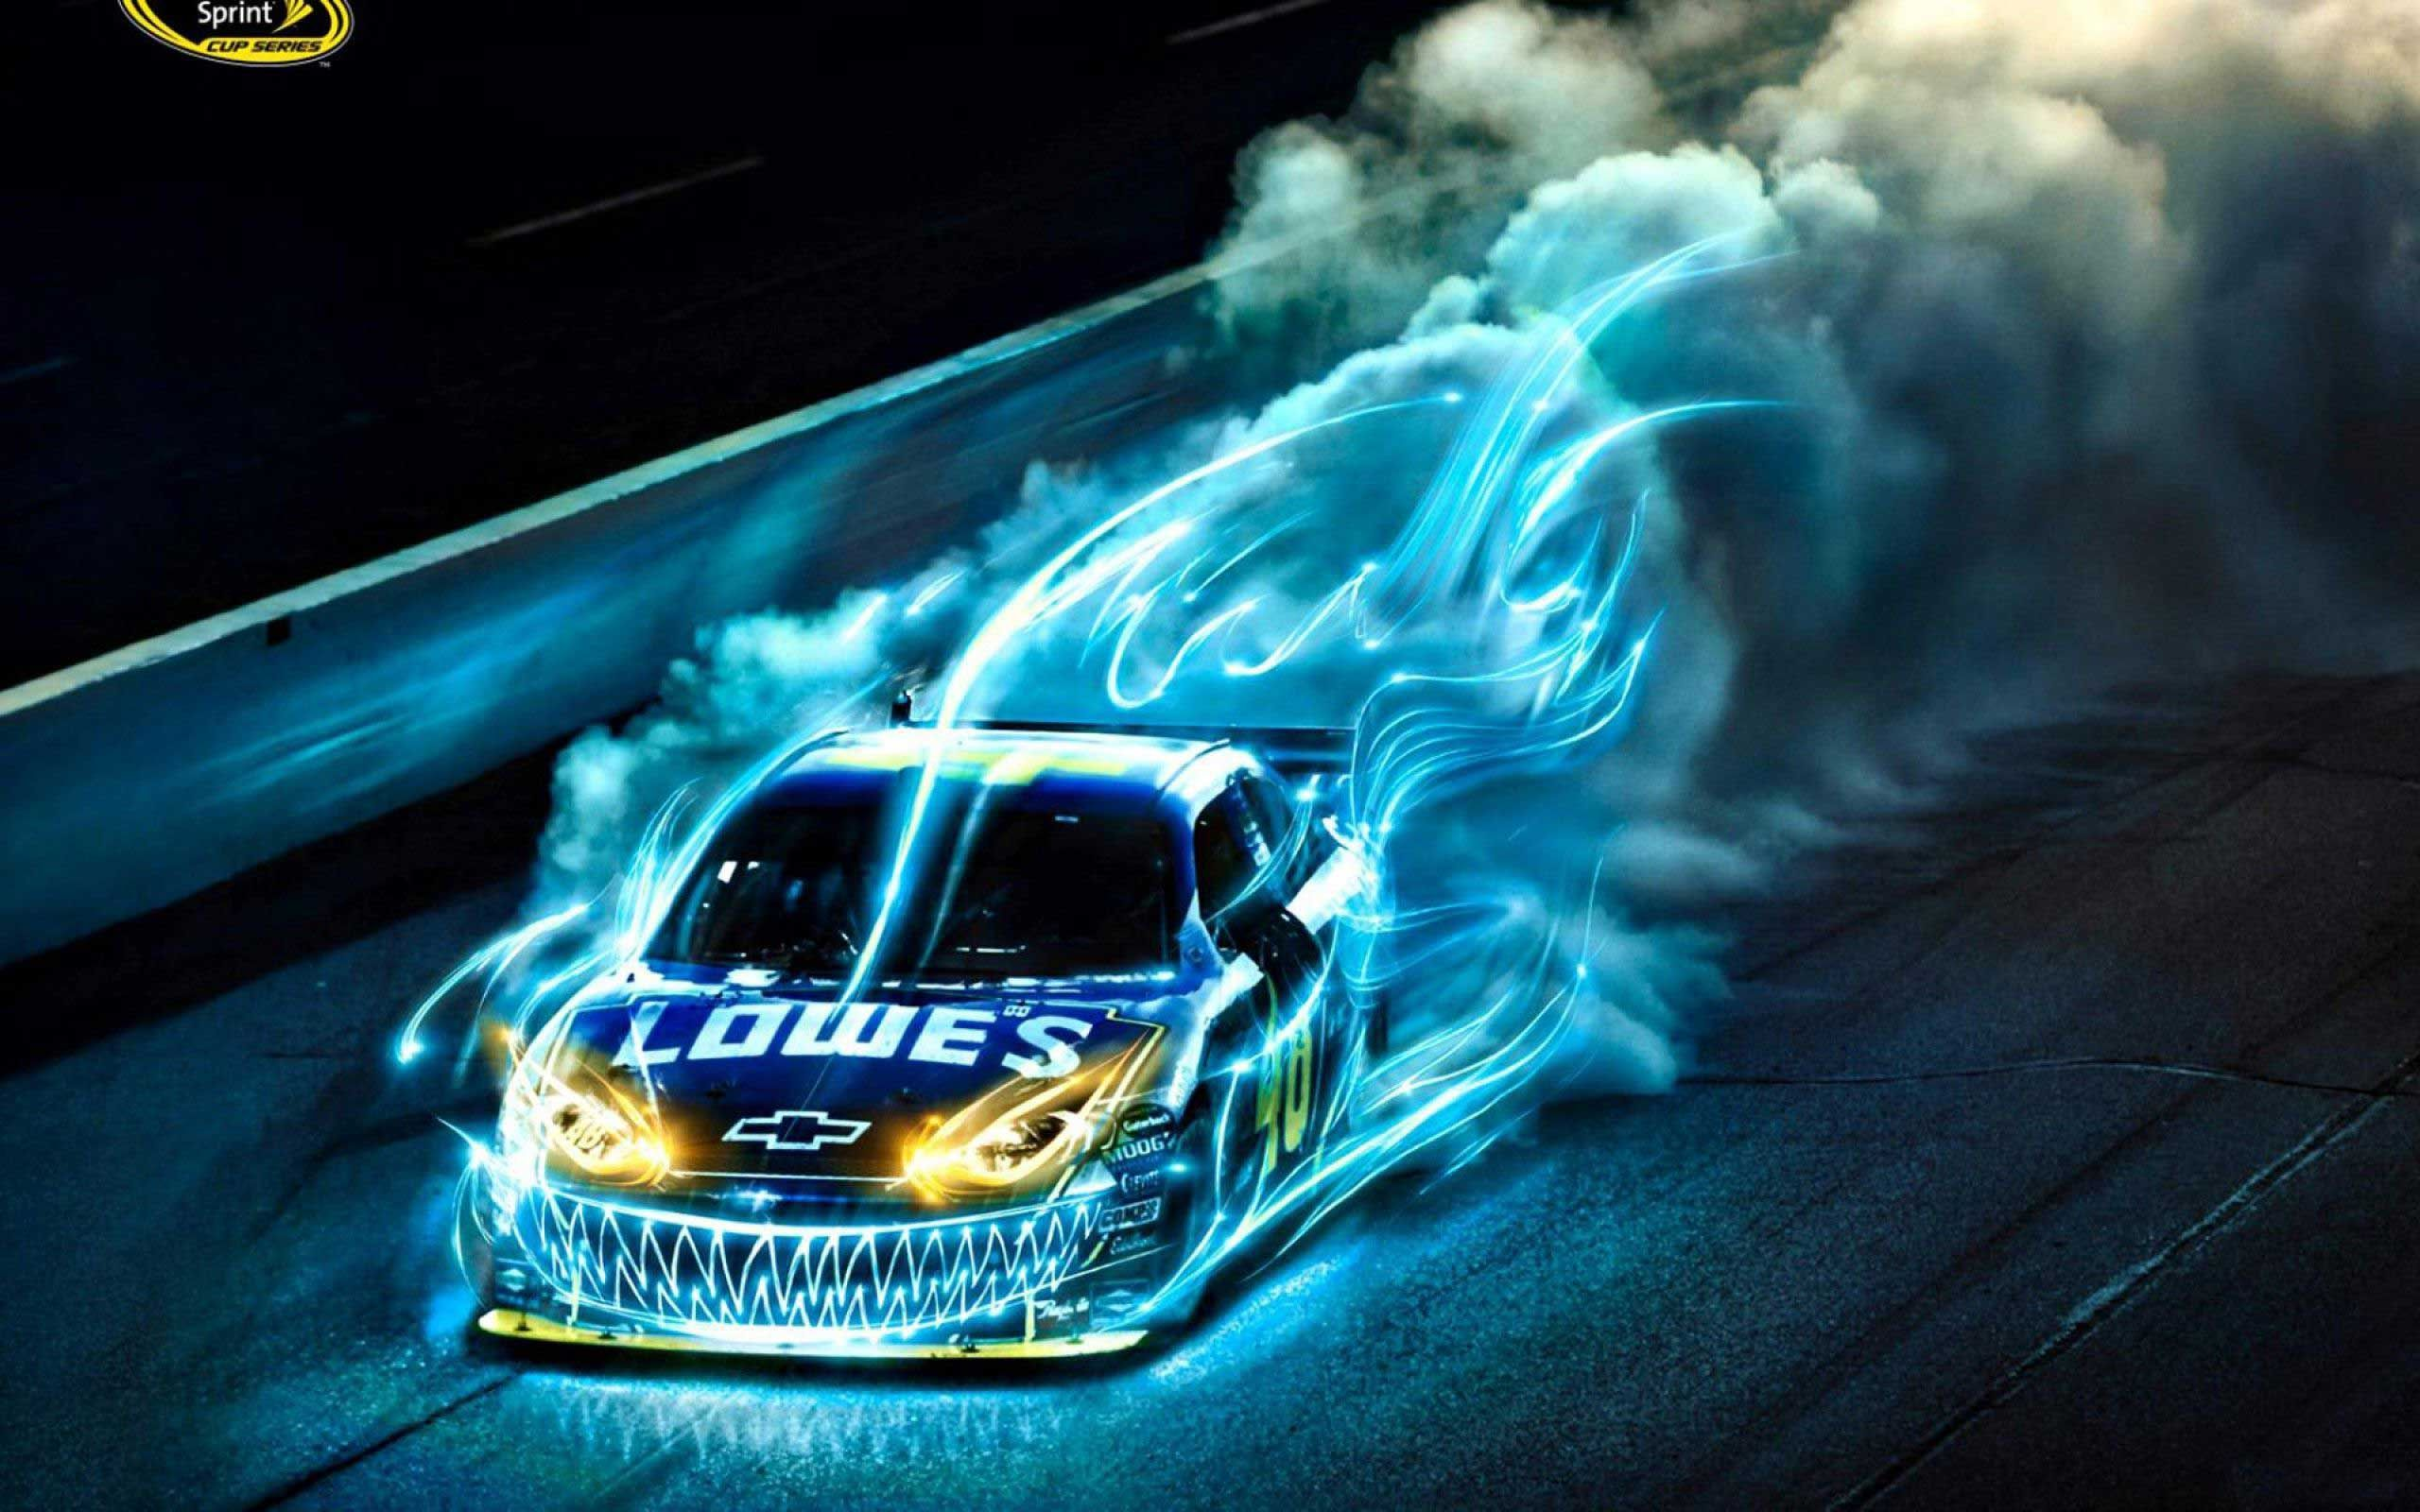 Car Wallpaper 1080p Pd2 With Images Nascar Car Wallpapers